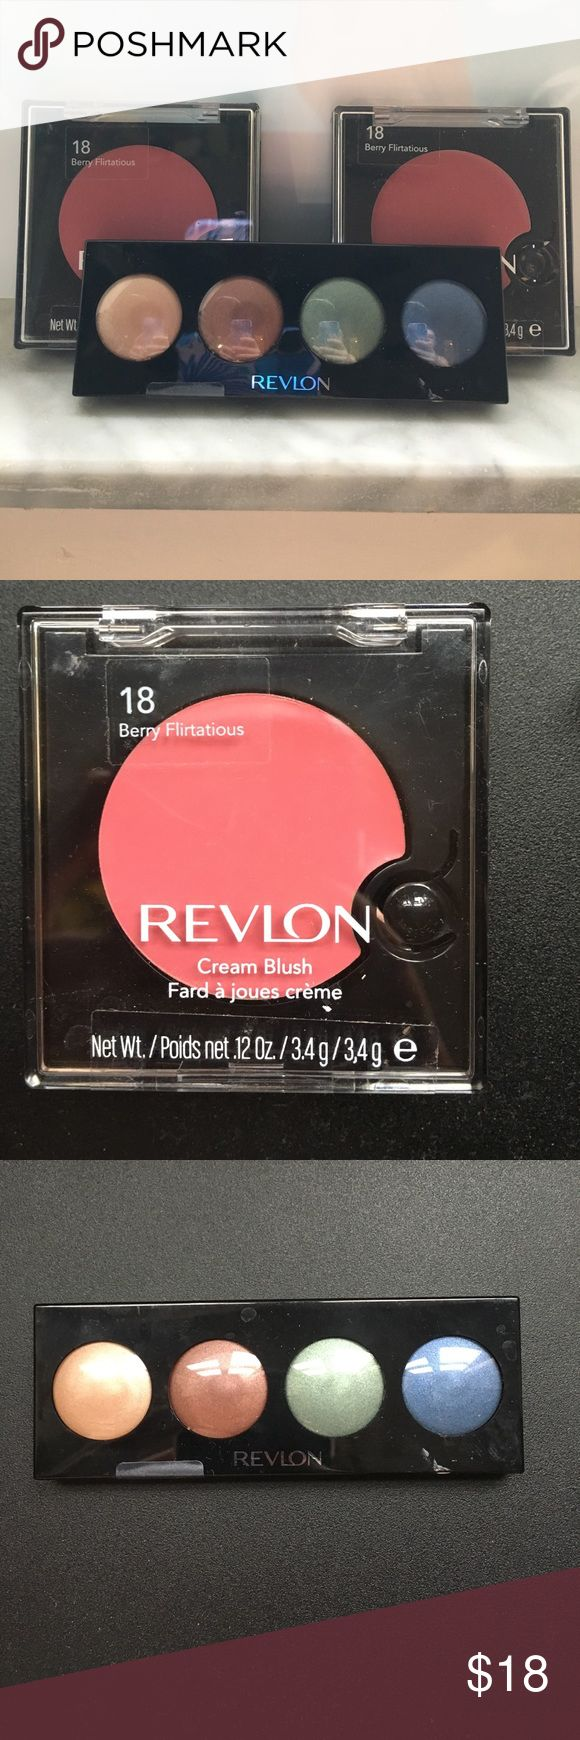 NWT Revlon Makeup Bundle NWT Revlon makeup bundle || 2 Berry Flirtatious cream blush & a Moonlit Jewels eyeshadow palette. Containers have some scratches but they have never been opened. The stickers keeping them closed from being opened are still on them. Revlon Makeup Blush